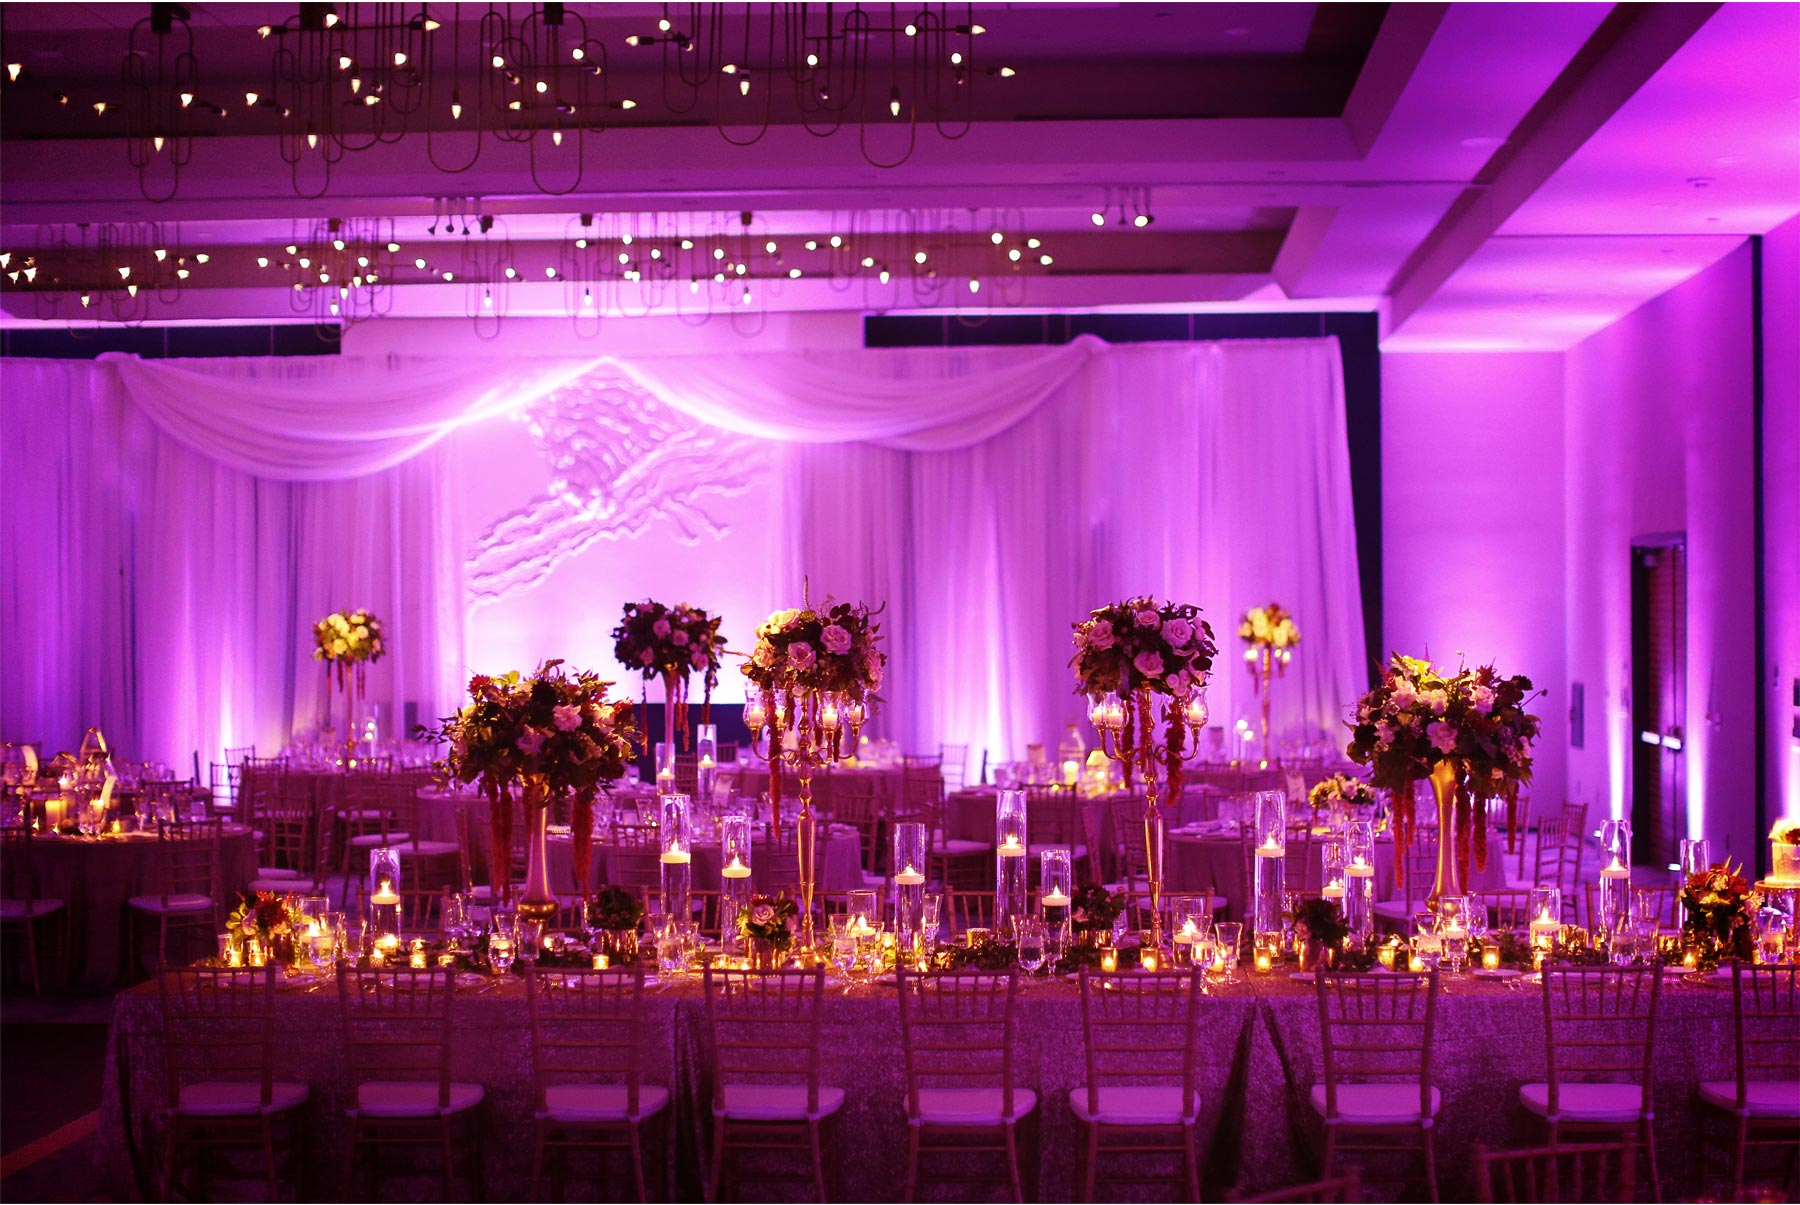 16-Minneapolis-Minnesota-Wedding-Photography-by-Vick-Photography-Loews-Hotel-Reception-Pink-Lighting-Caitlin-and-Alec.jpg